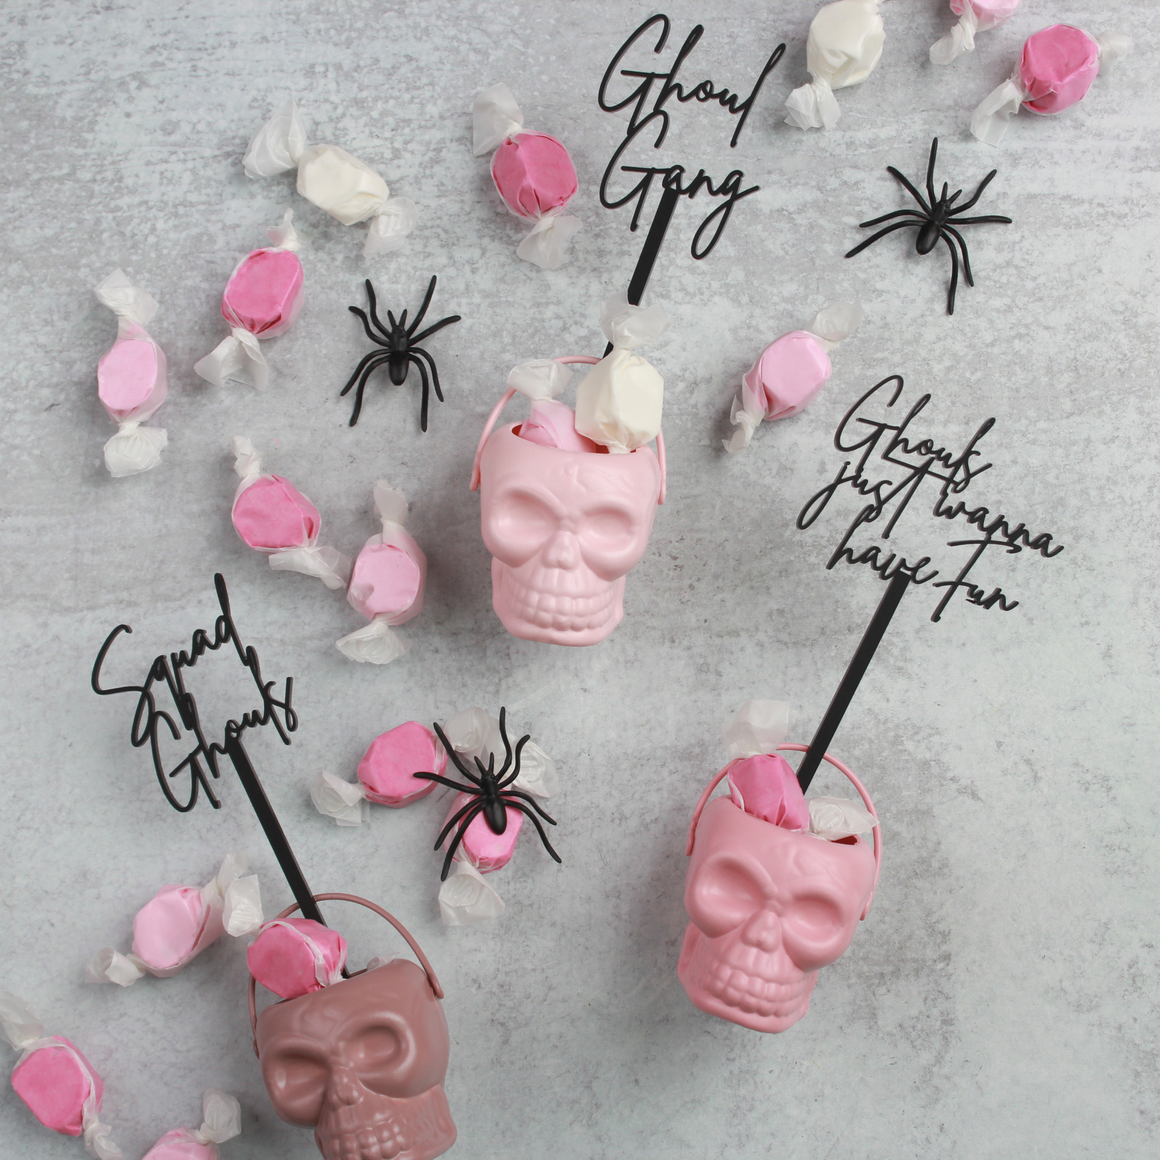 Ghoul Gang Stir Sticks